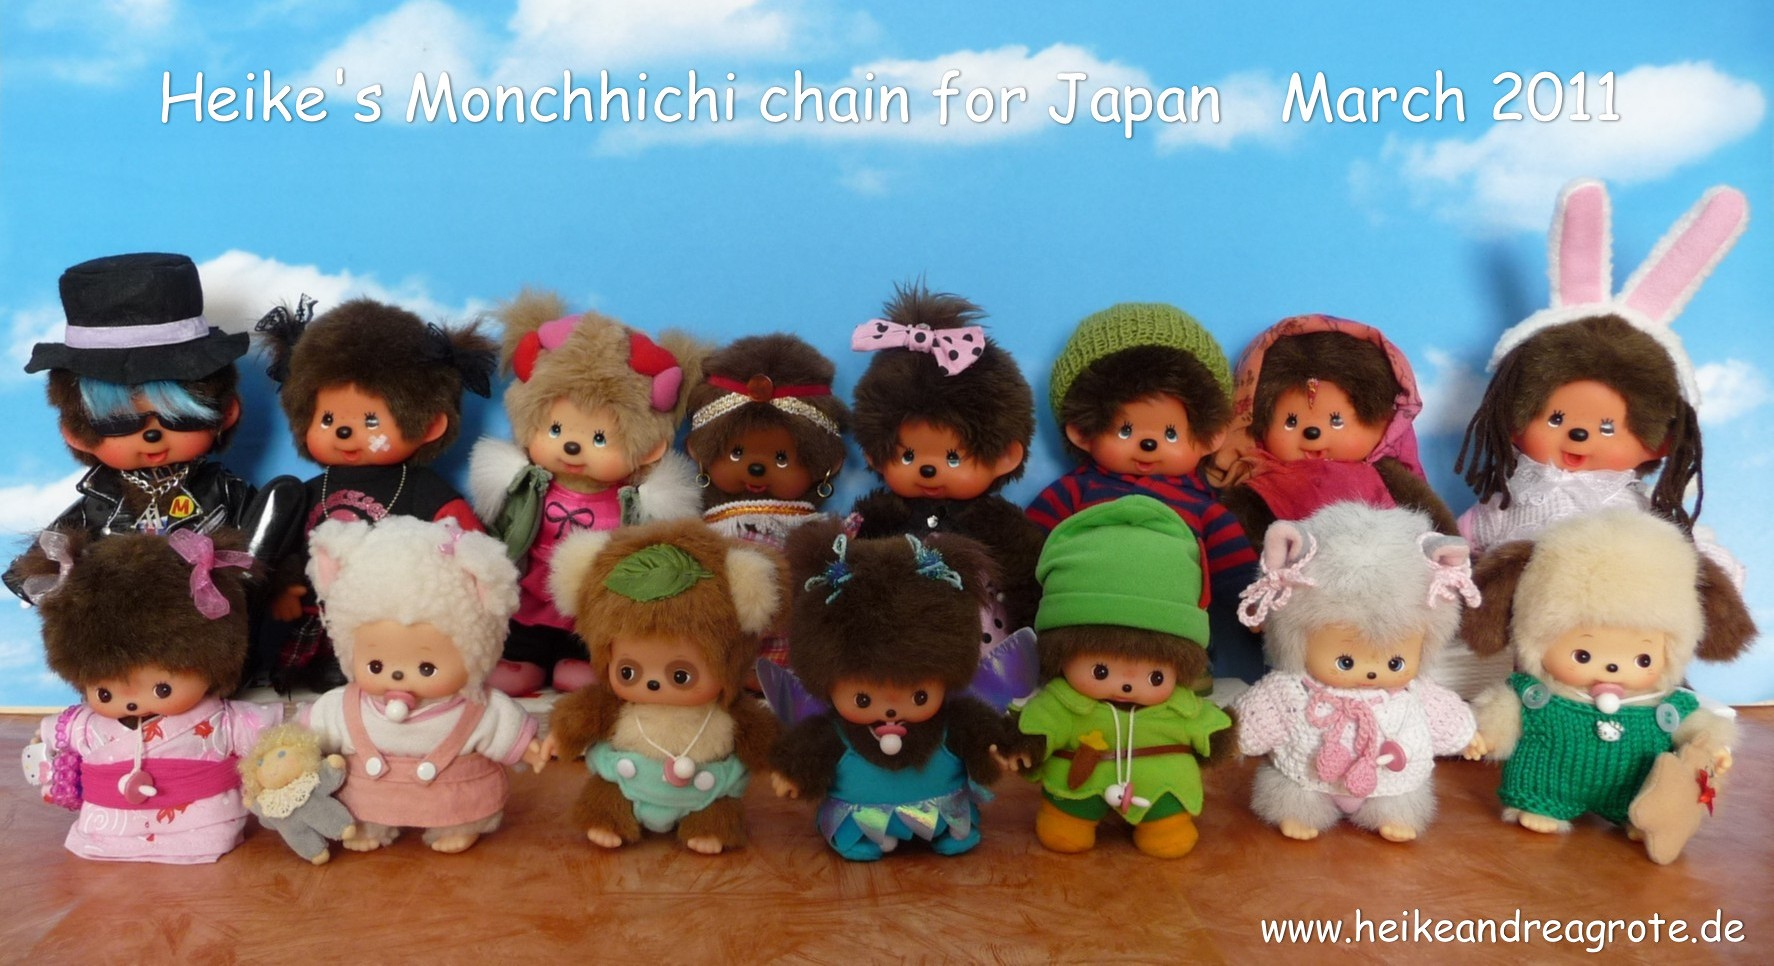 Heike's Monchhichi Chain For Japan